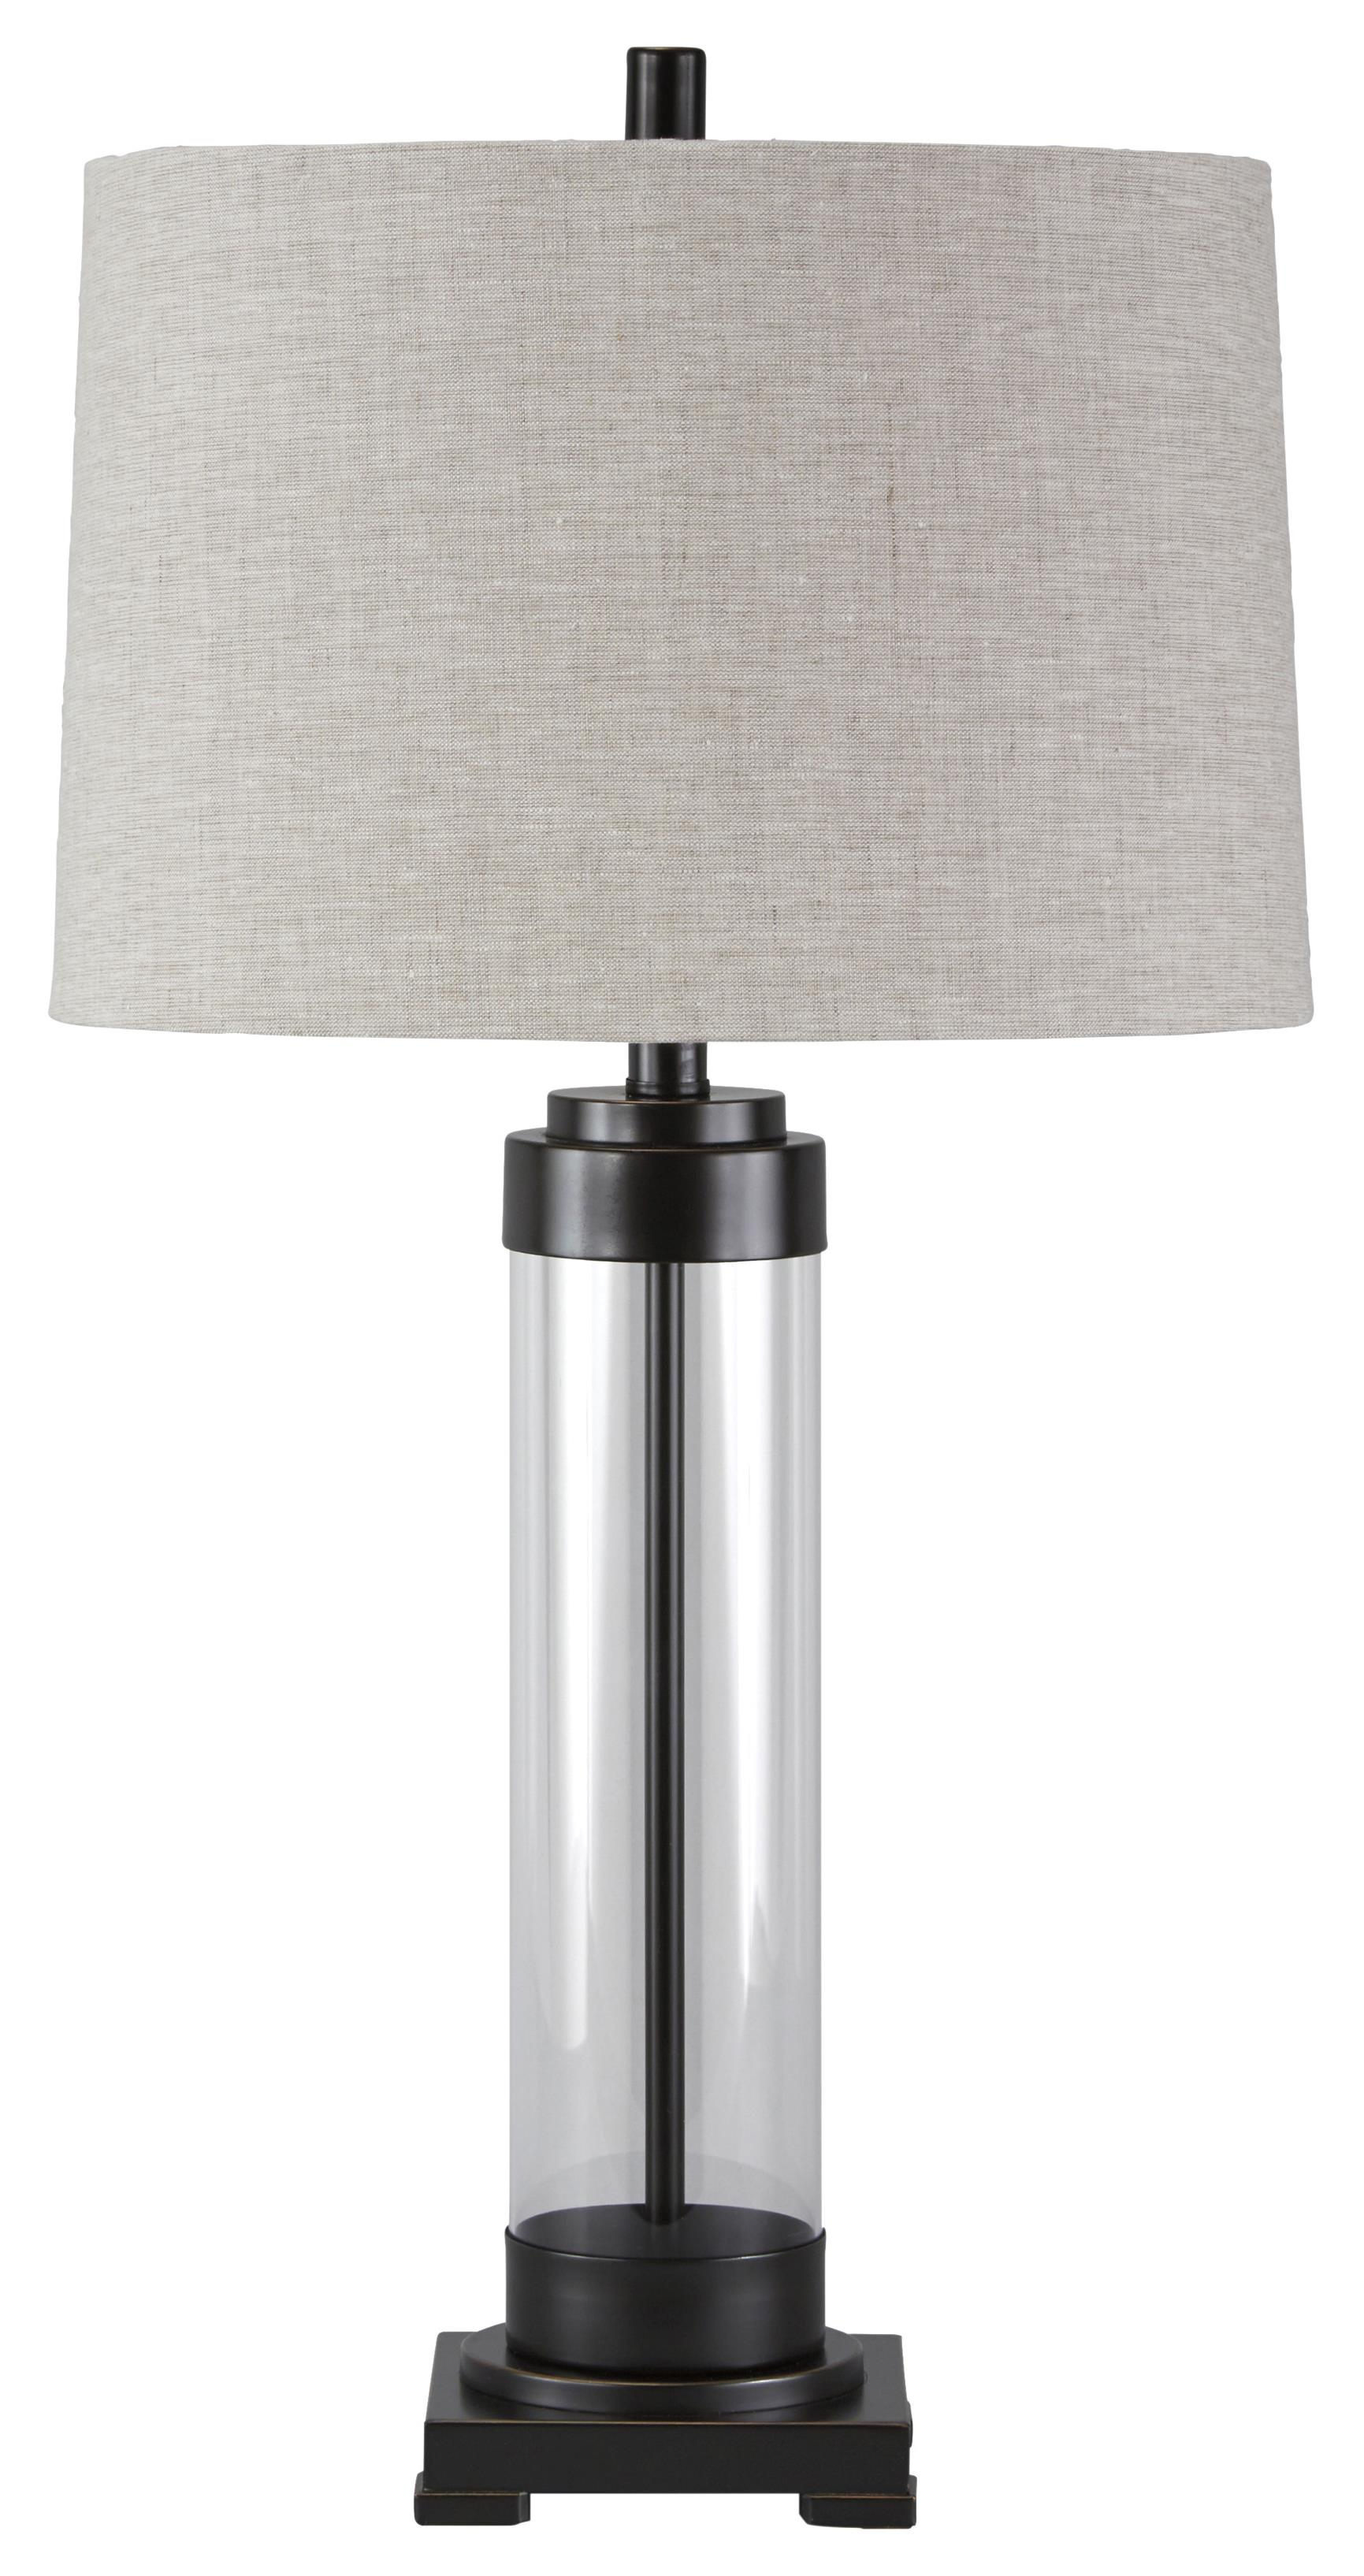 Signature Design by Ashley Lamps - Vintage Style Talar Glass Table Lamp - Item Number: L430164